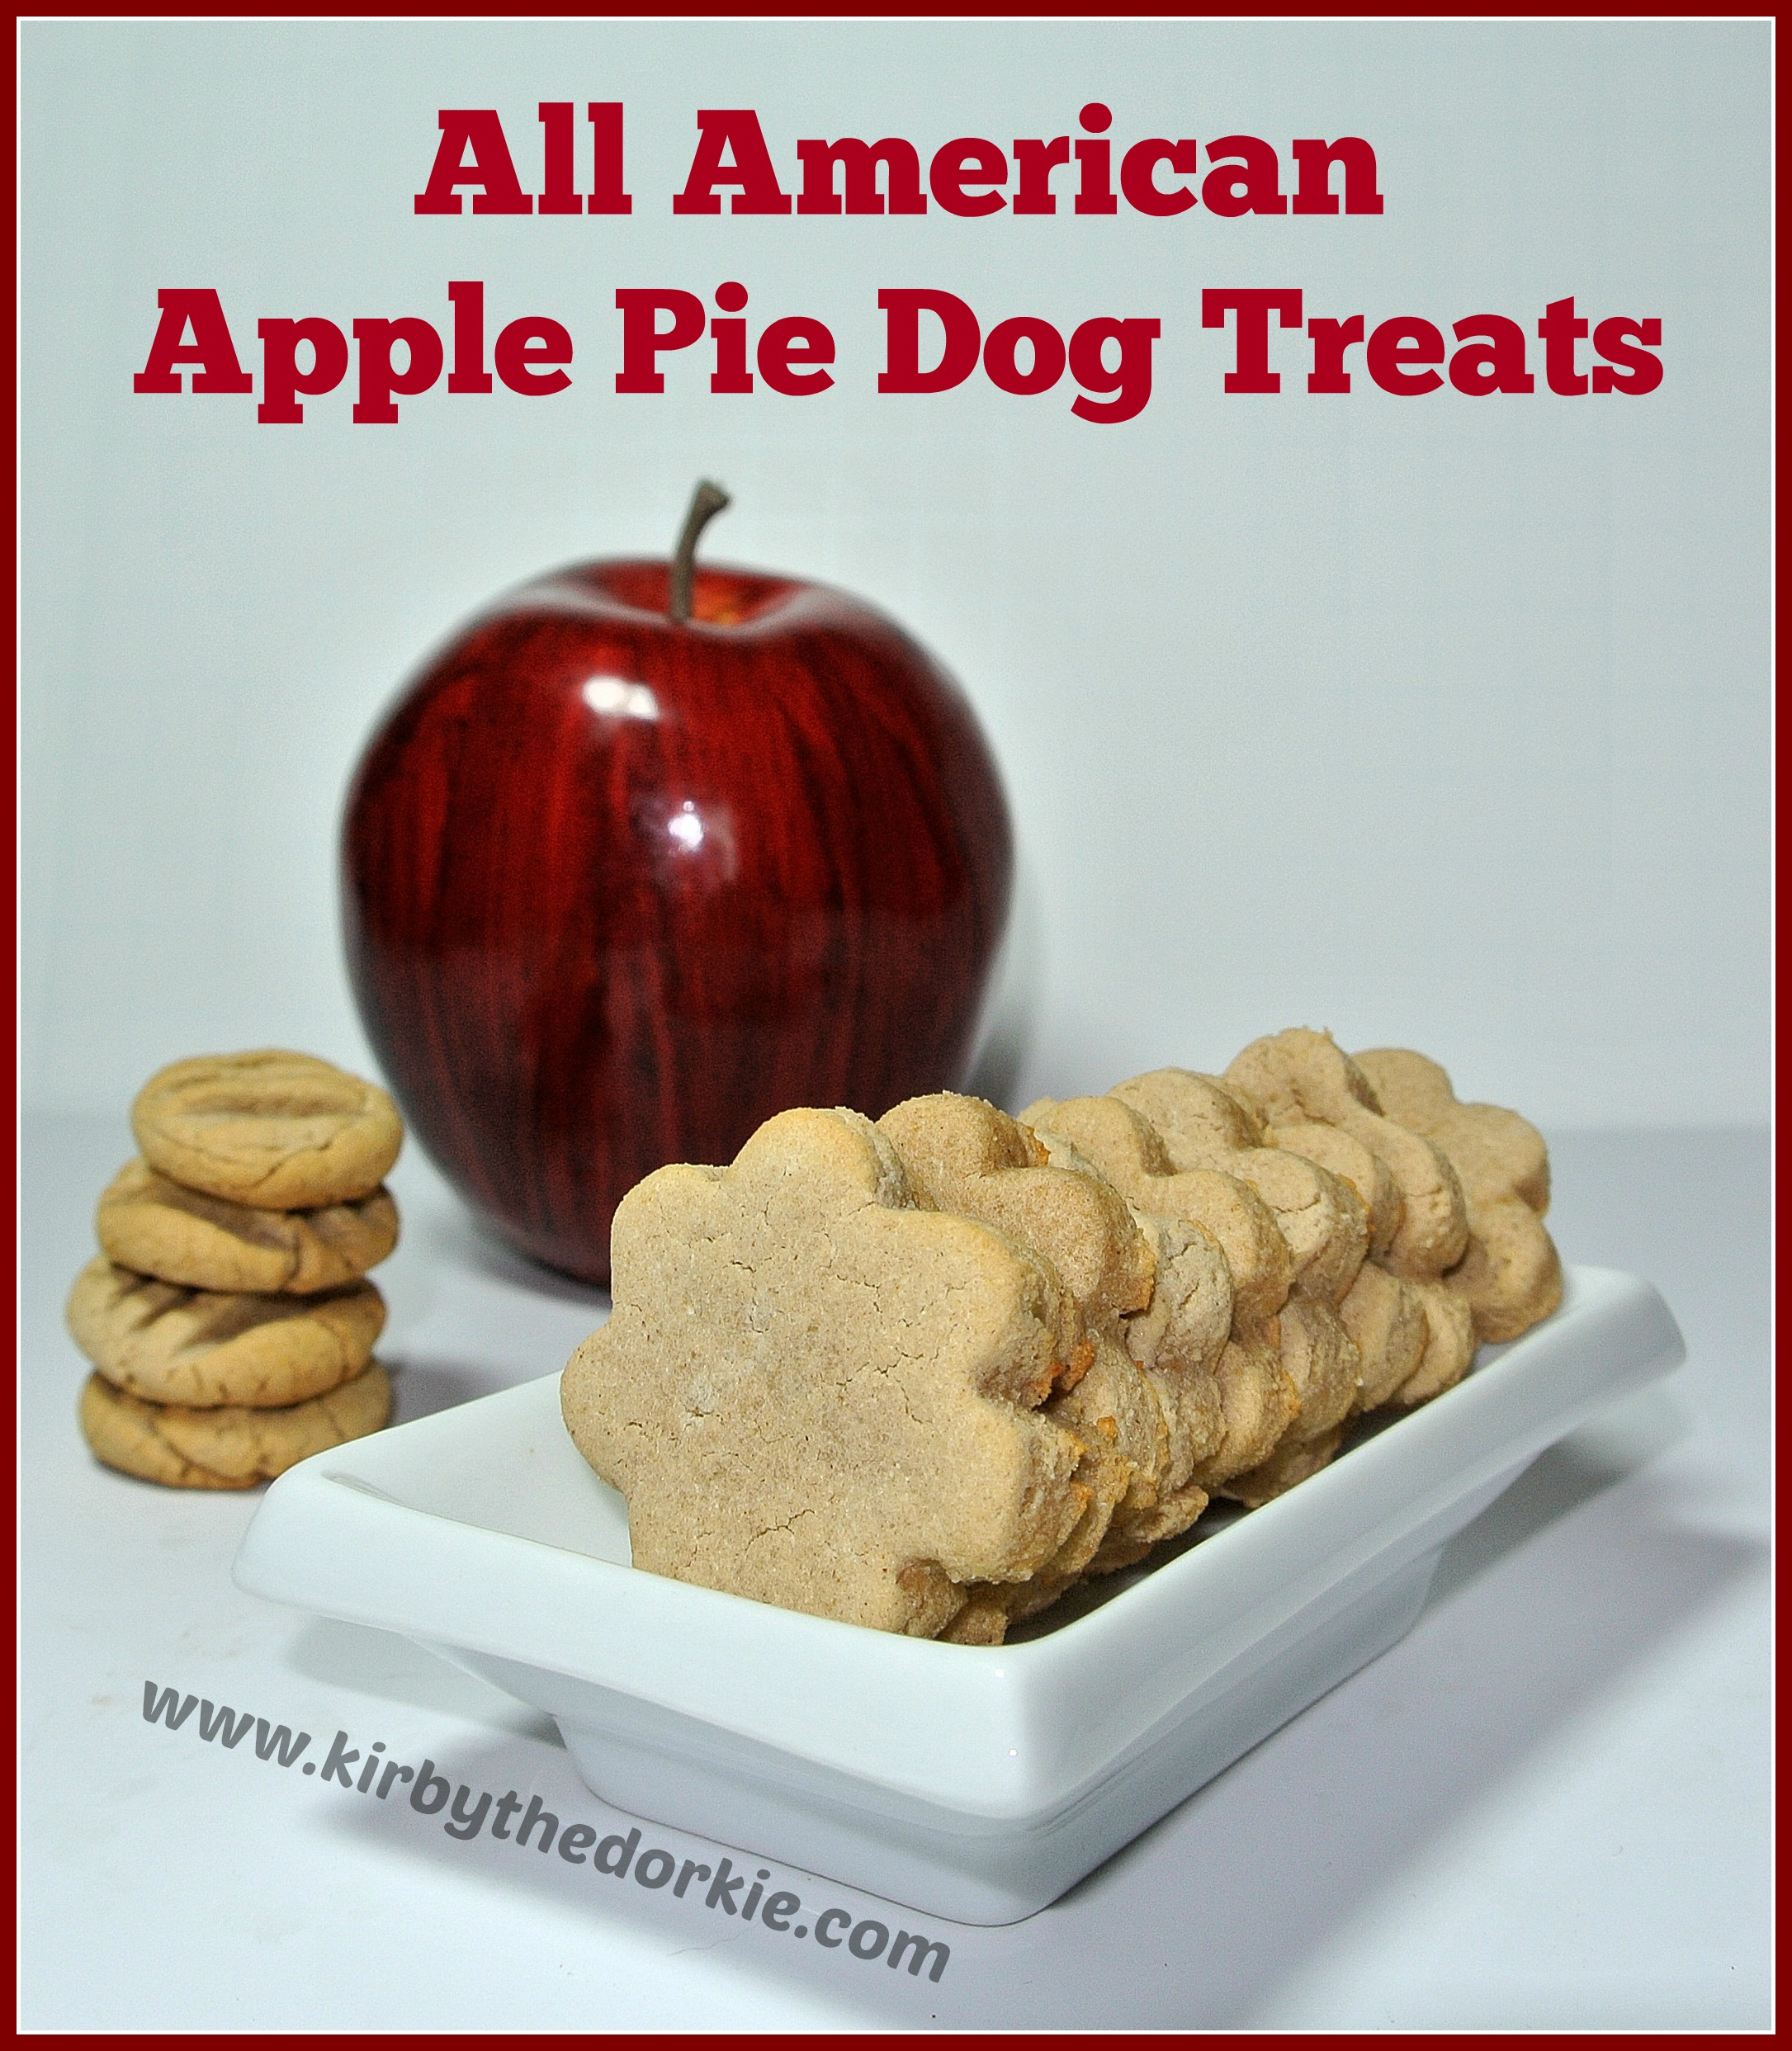 Preferential Grain Free Baked Dog Treat All American Apple Pie Retired Dog Treat Recipes Canine Chef Cookbook Homemade Grain Free Meat Dog Treats Homemade Grain Free Potato Dog Treats bark post Homemade Grain Free Dog Treats